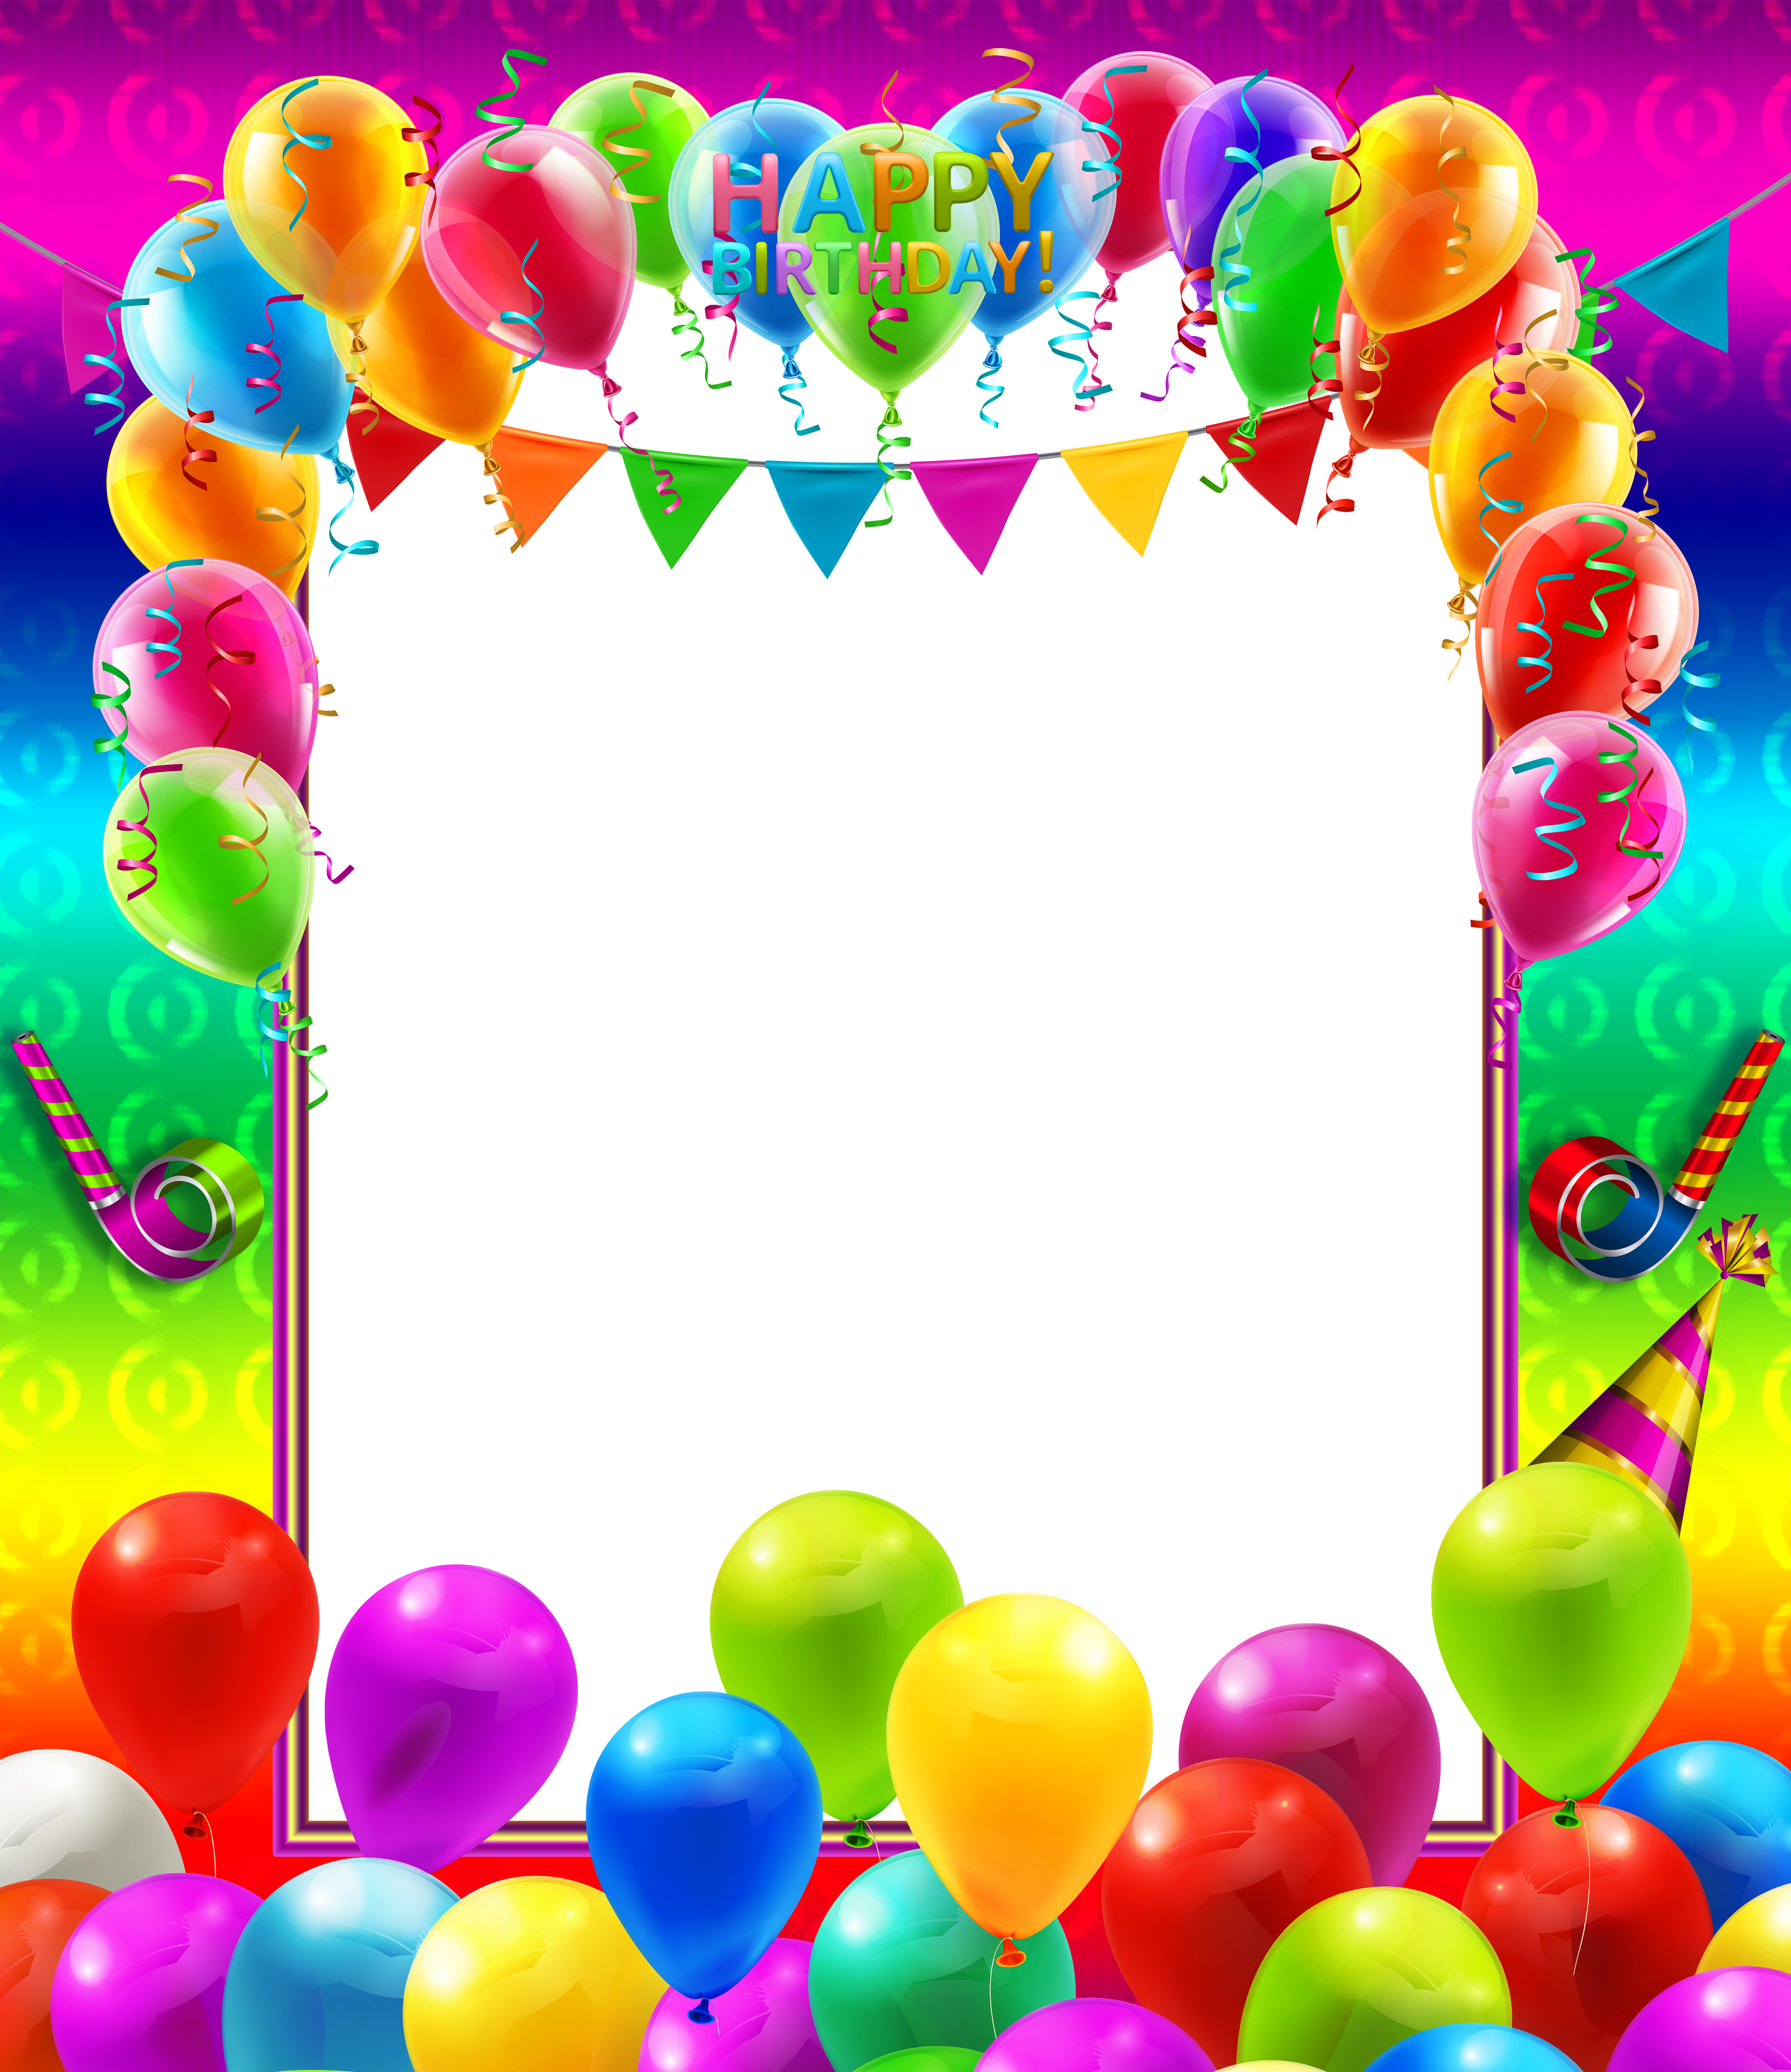 Colorful border png. Happy birthday transparent frame